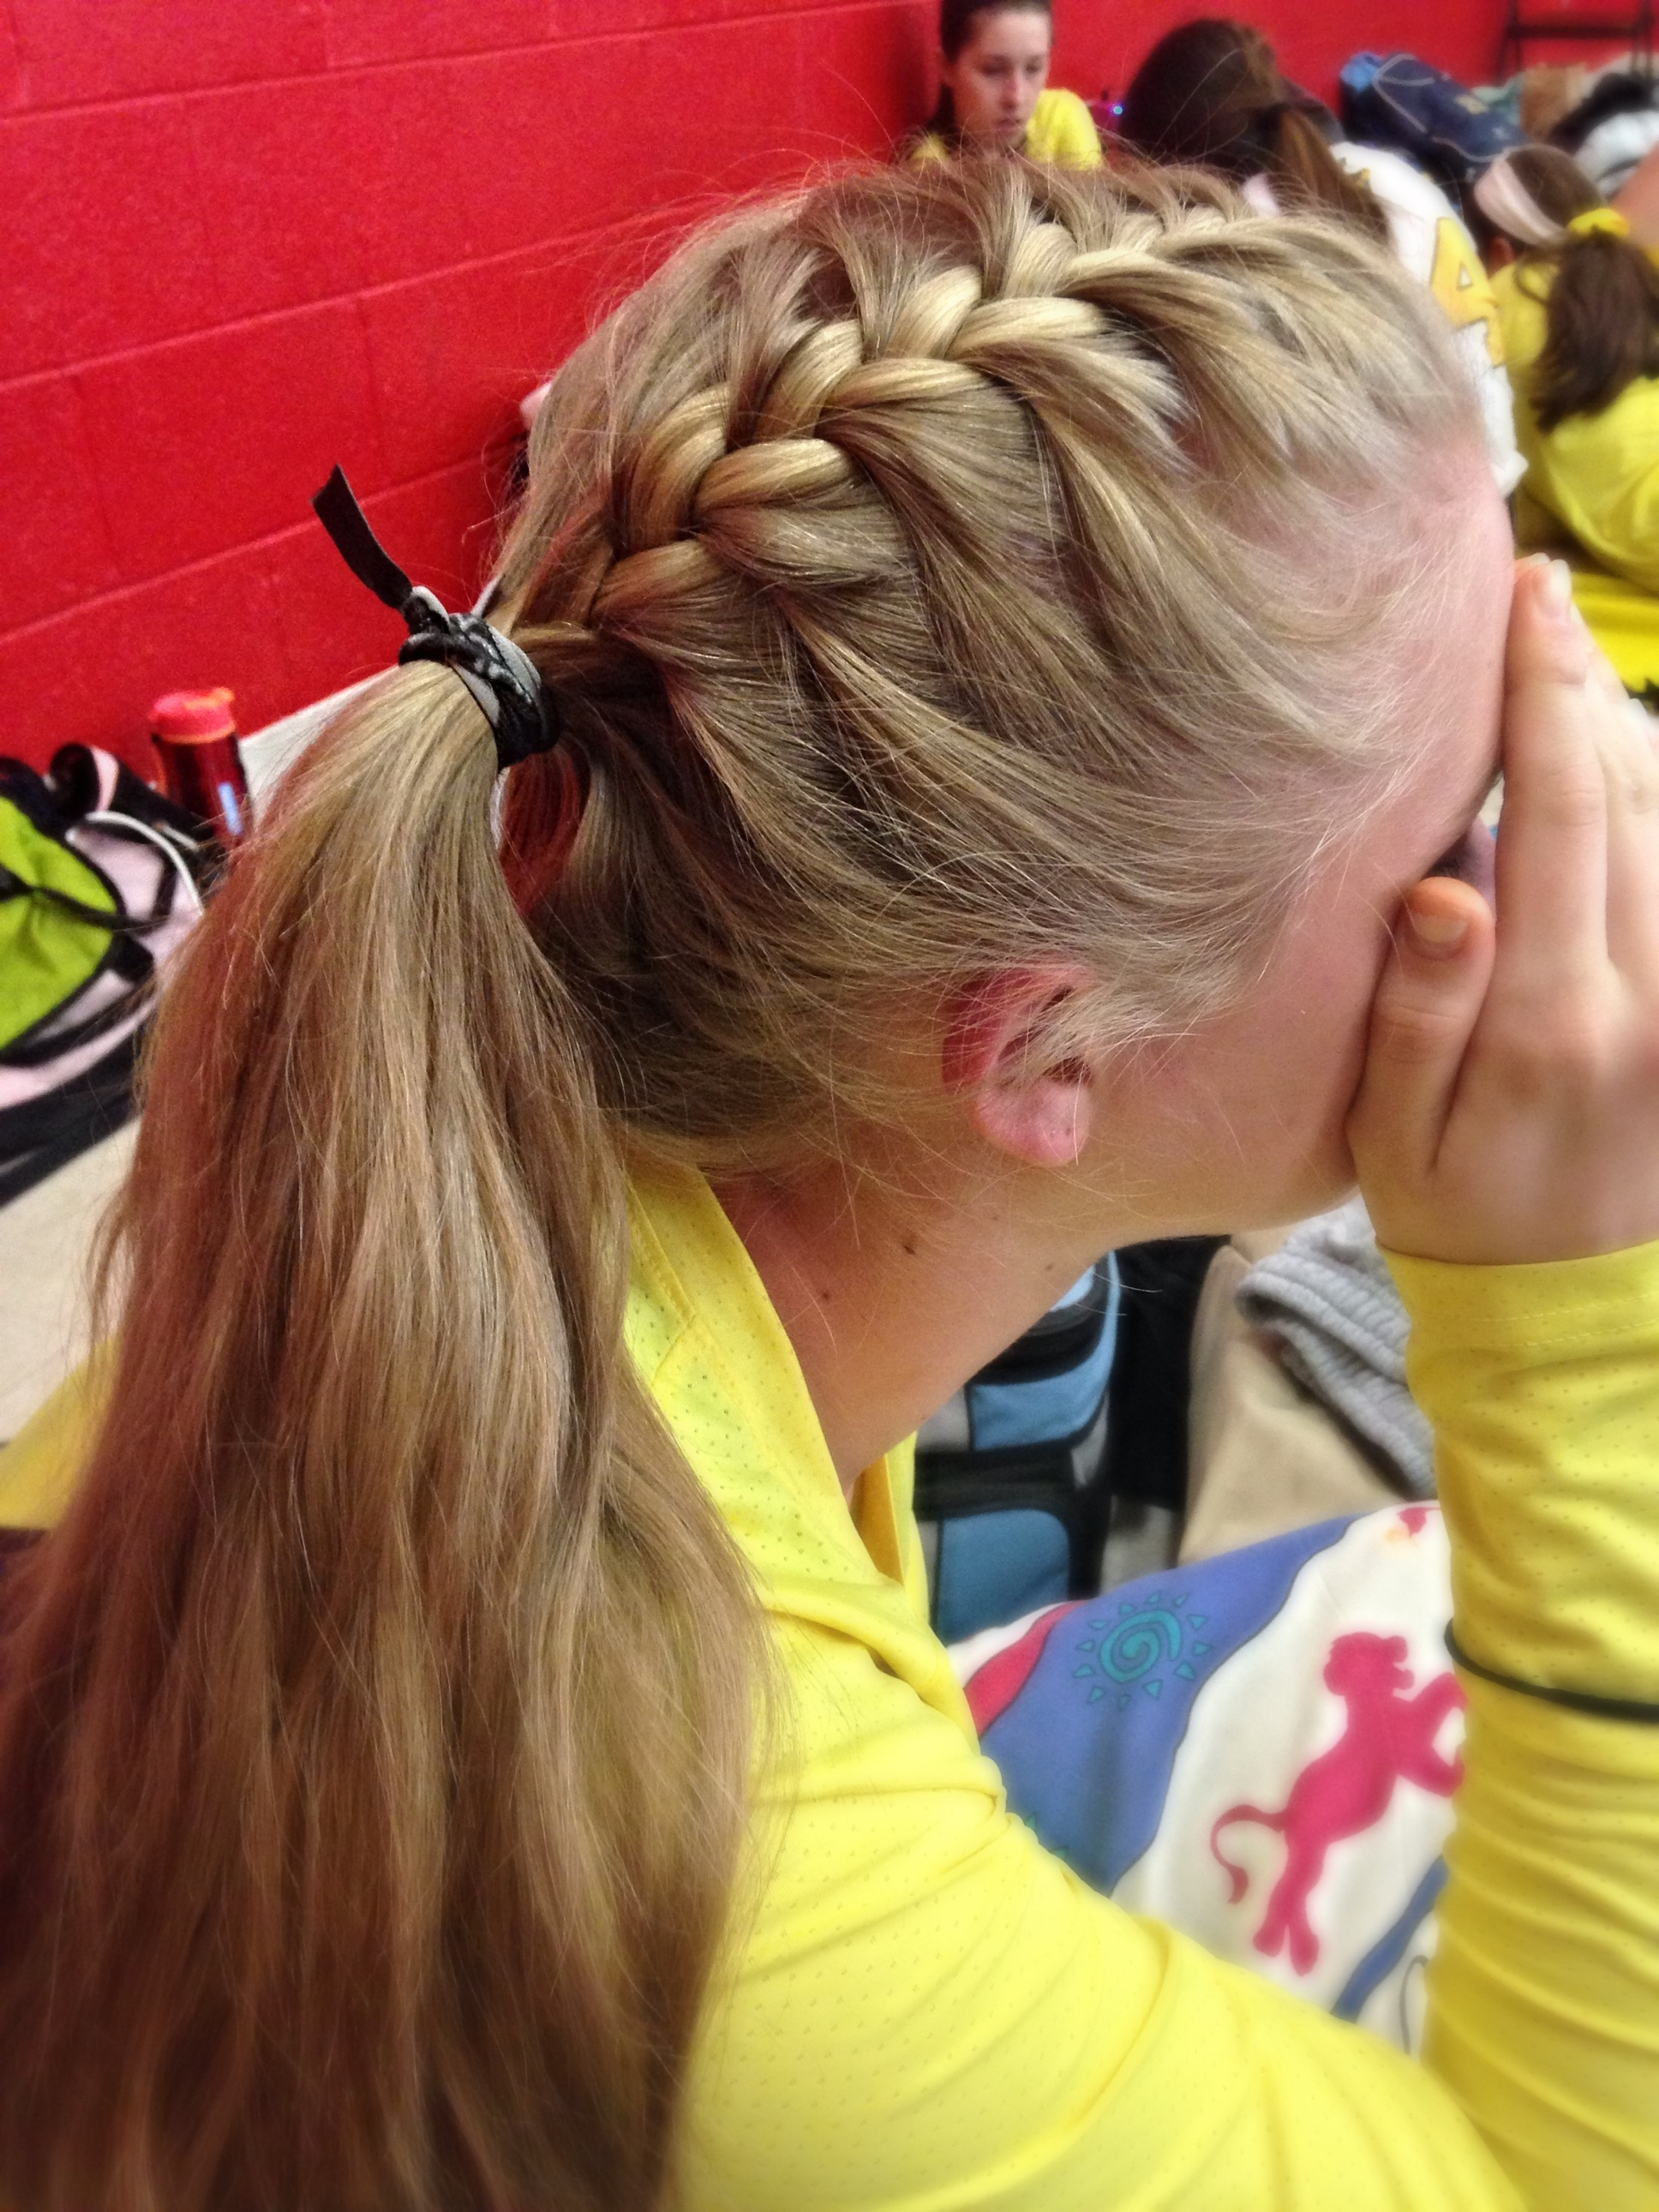 Drawn braid sporty Find Pin Sporty hair Volleyball